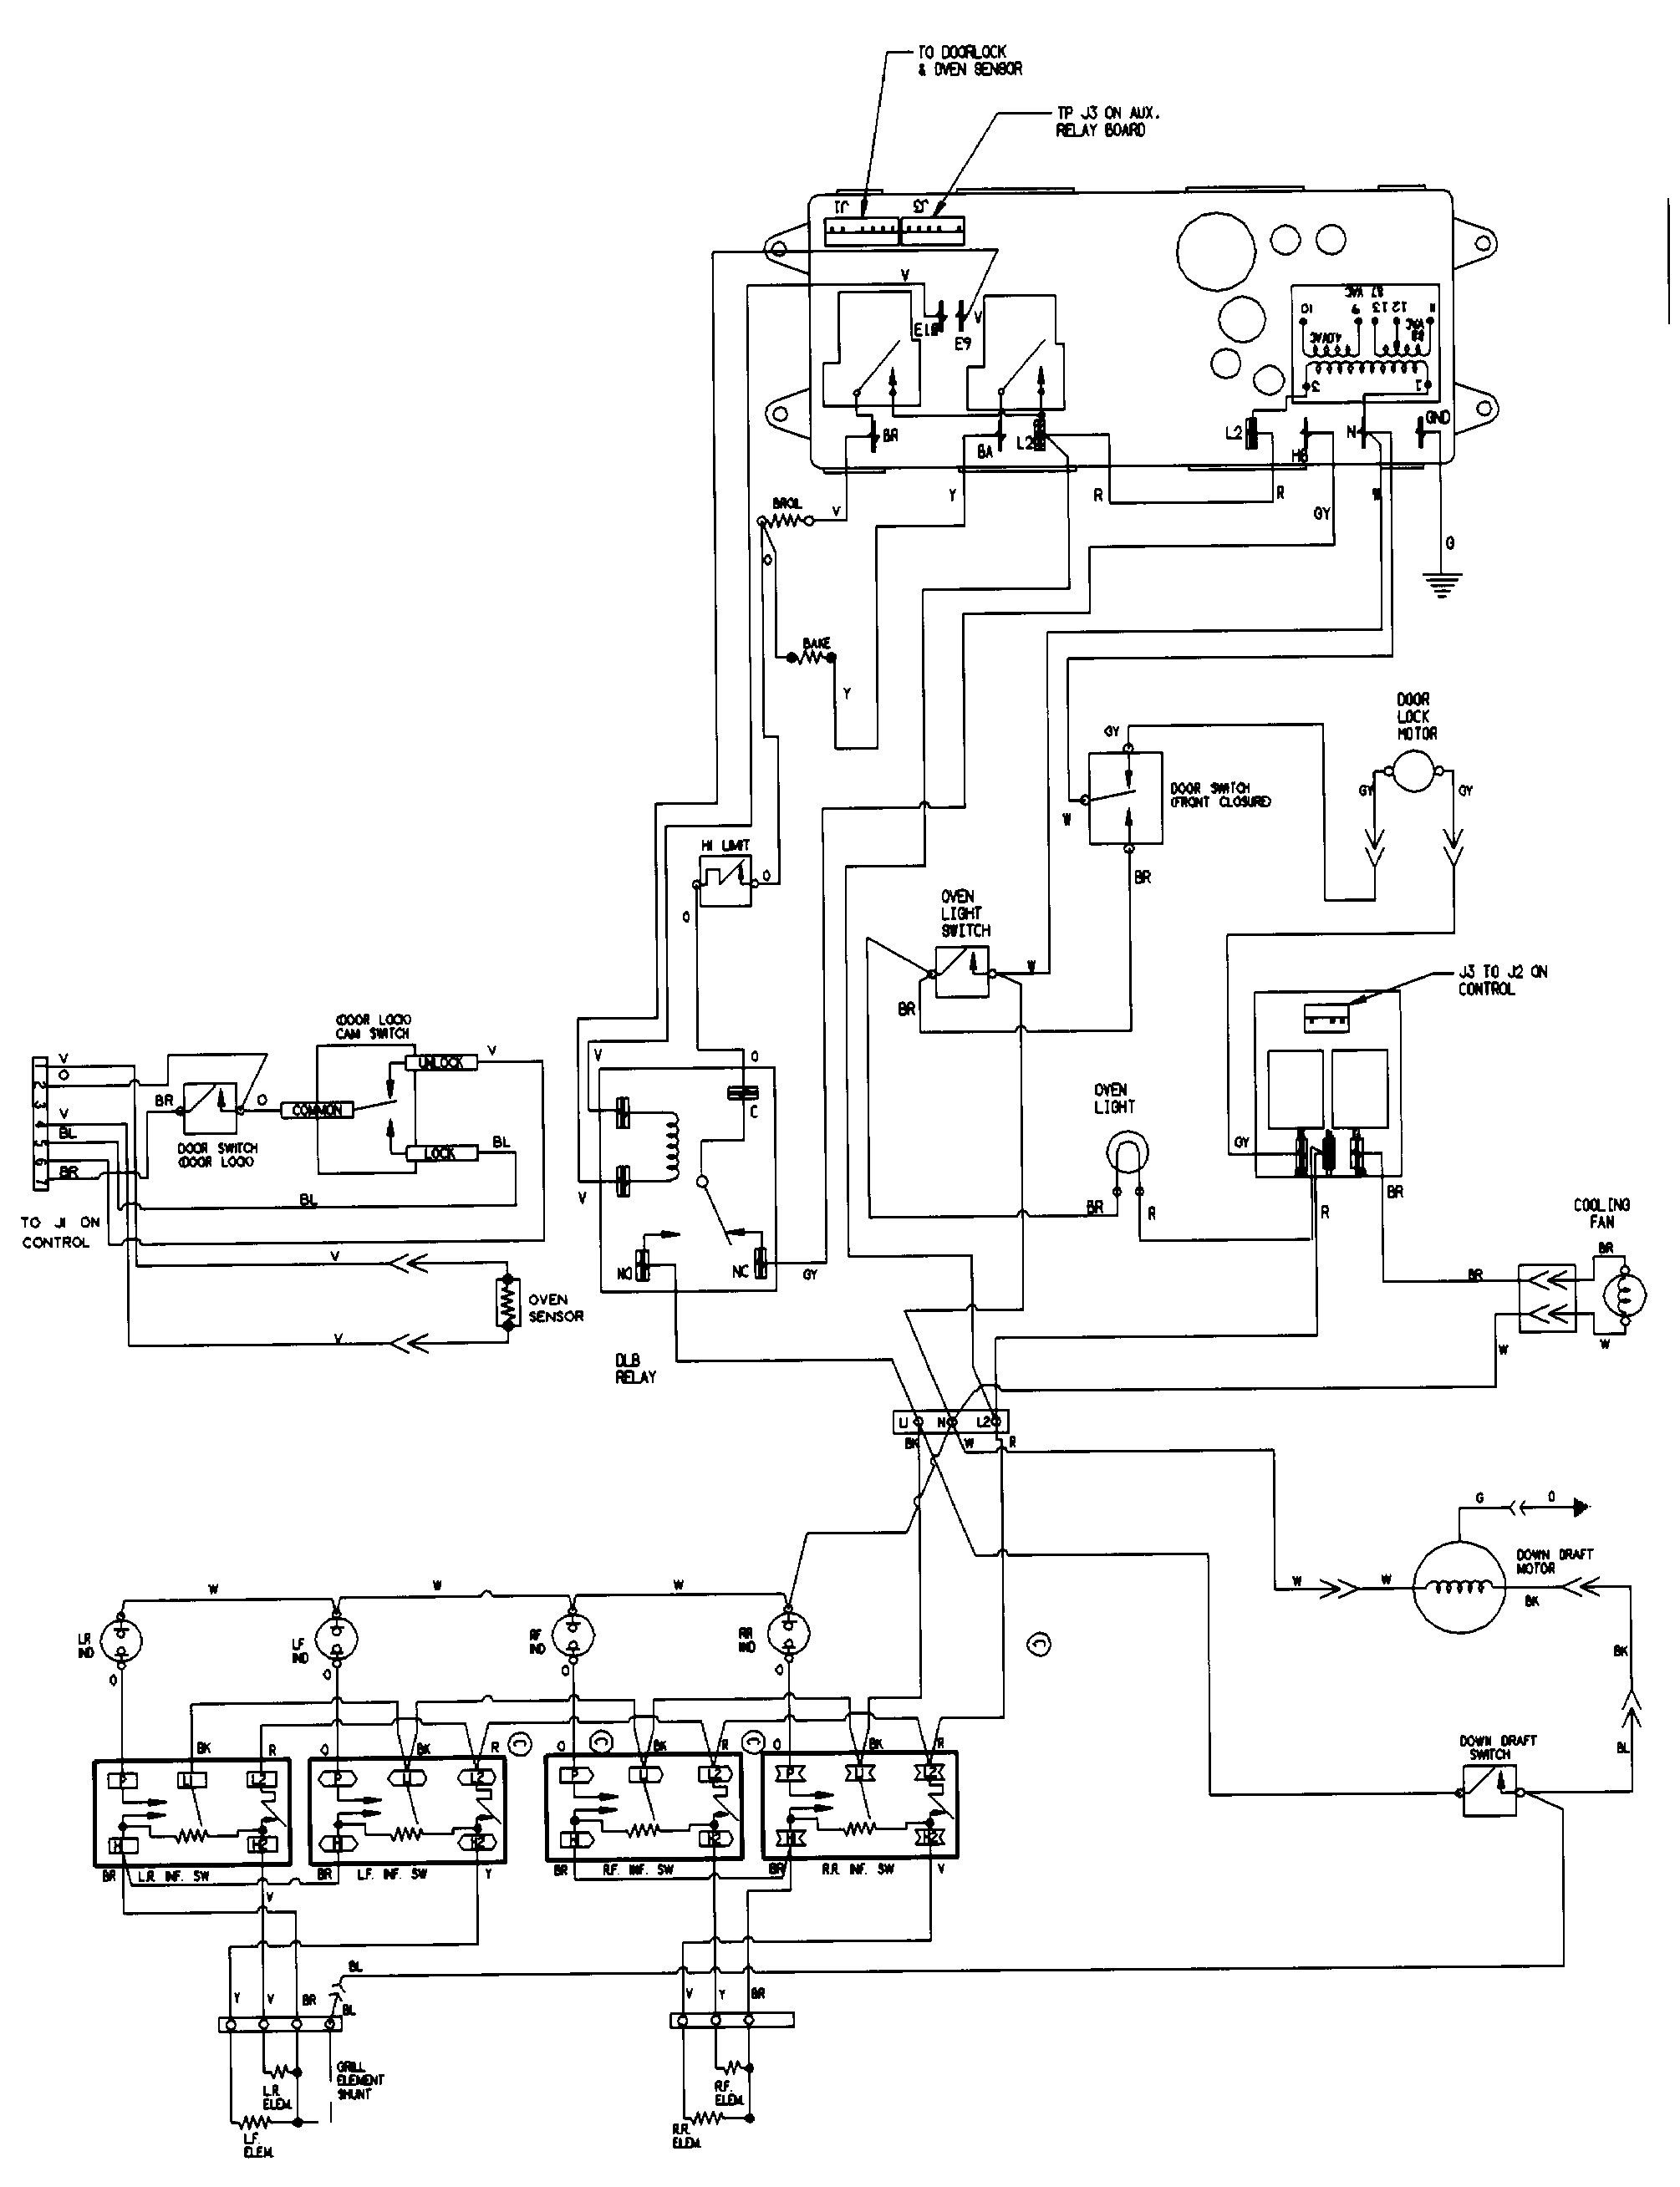 23 Complex Wiring Diagram Online For You (With images